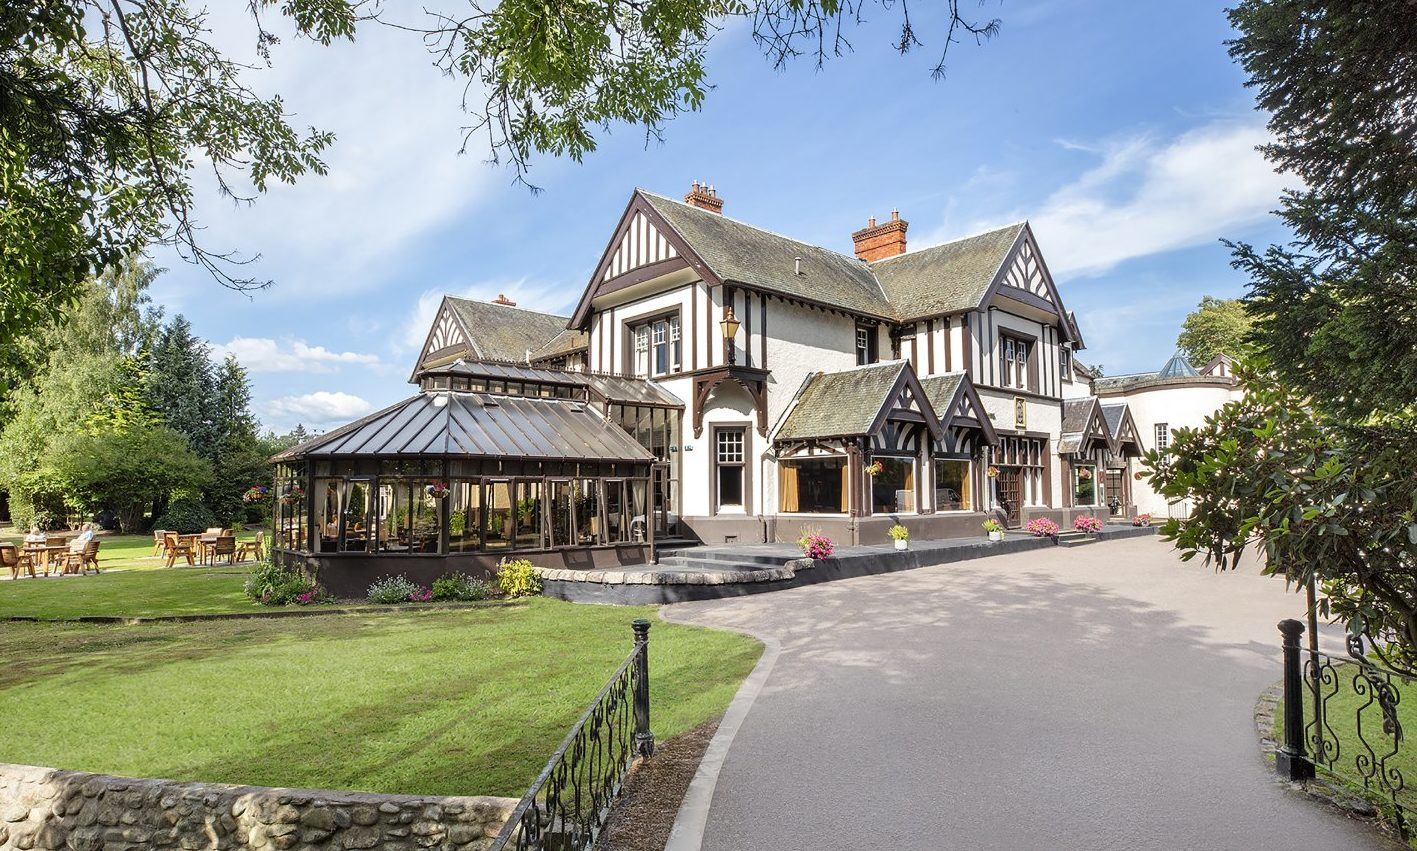 The Huntingtower Hotel, on the edge of Perth